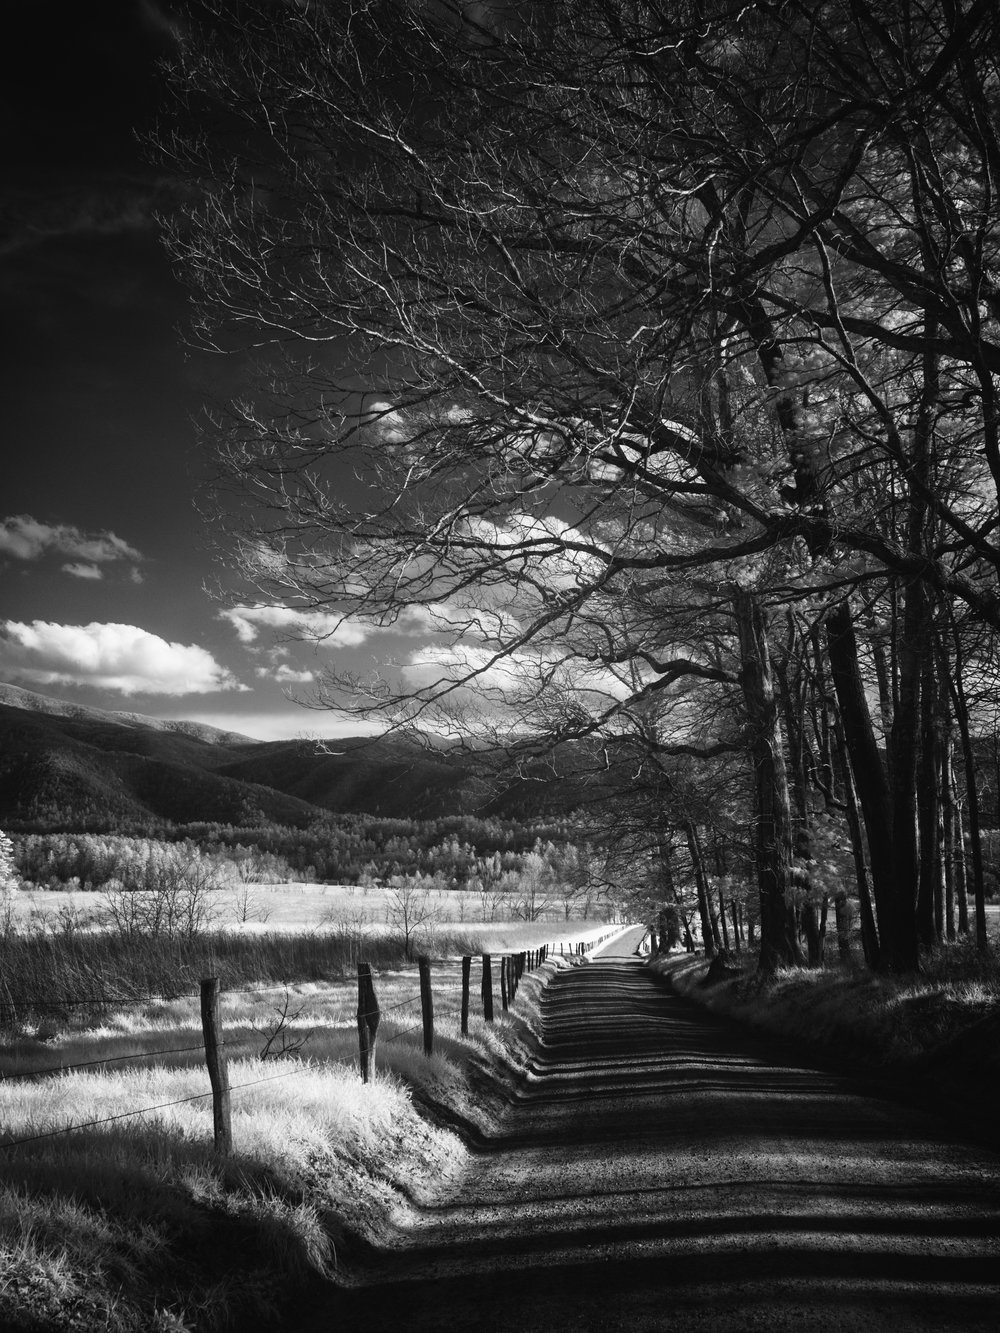 The view along Sparks Lane in Cade's Cove. 30nm converted OM-D E-M1 MkI + mZuiko 12-100mm PRO